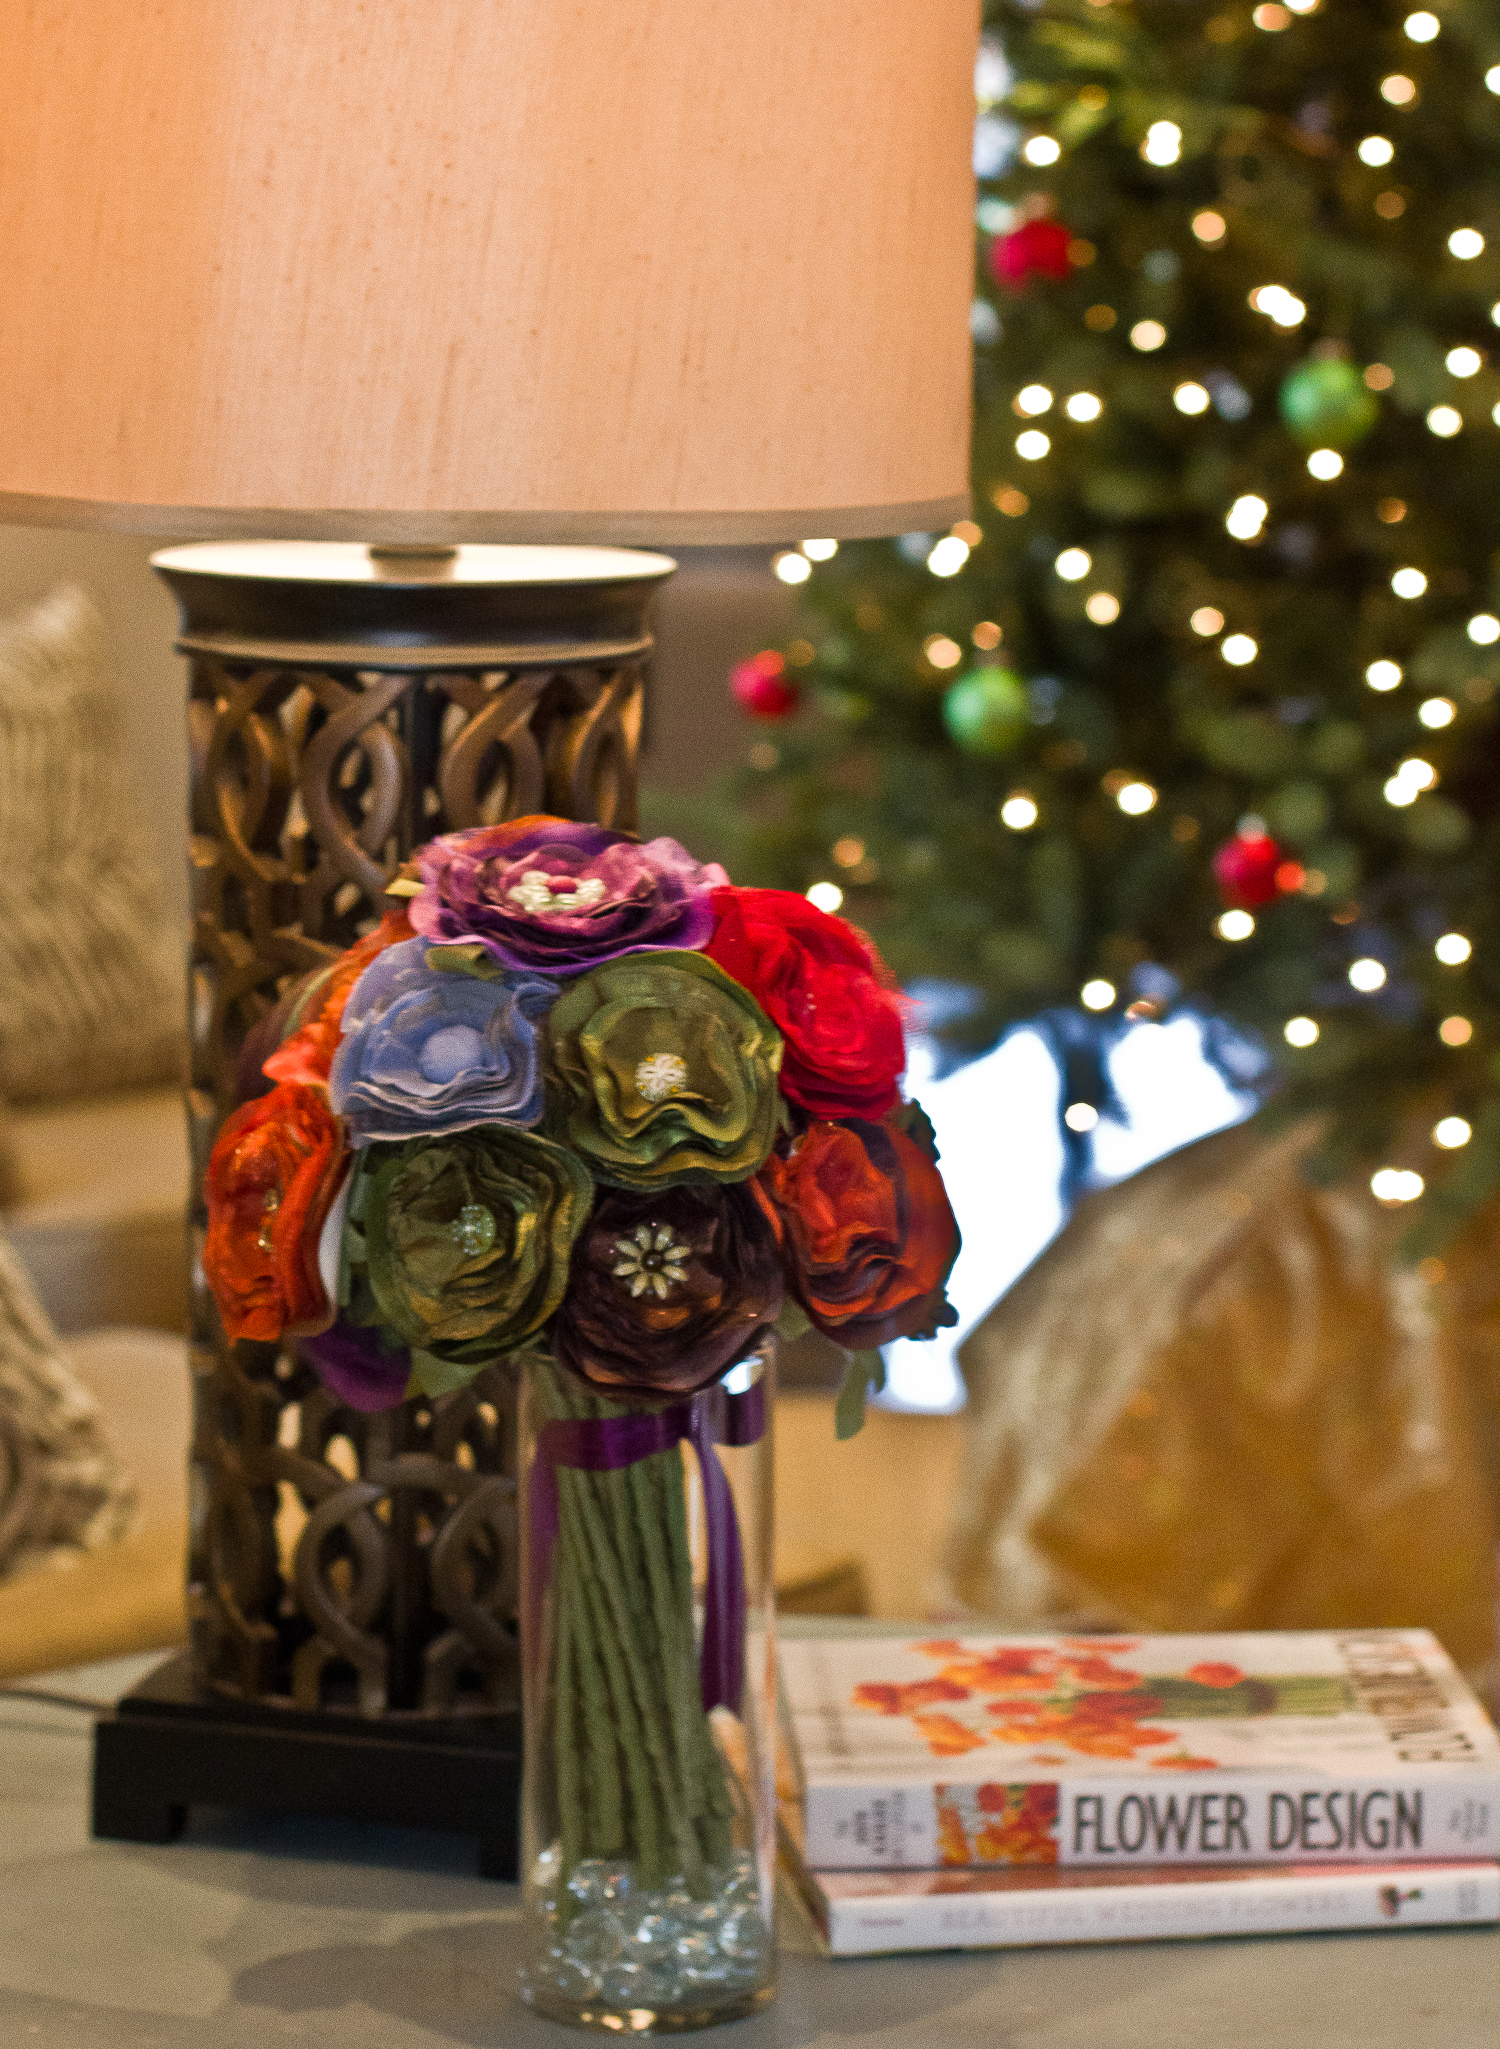 Home Decor Bouquet 5 Cmas Whimwed